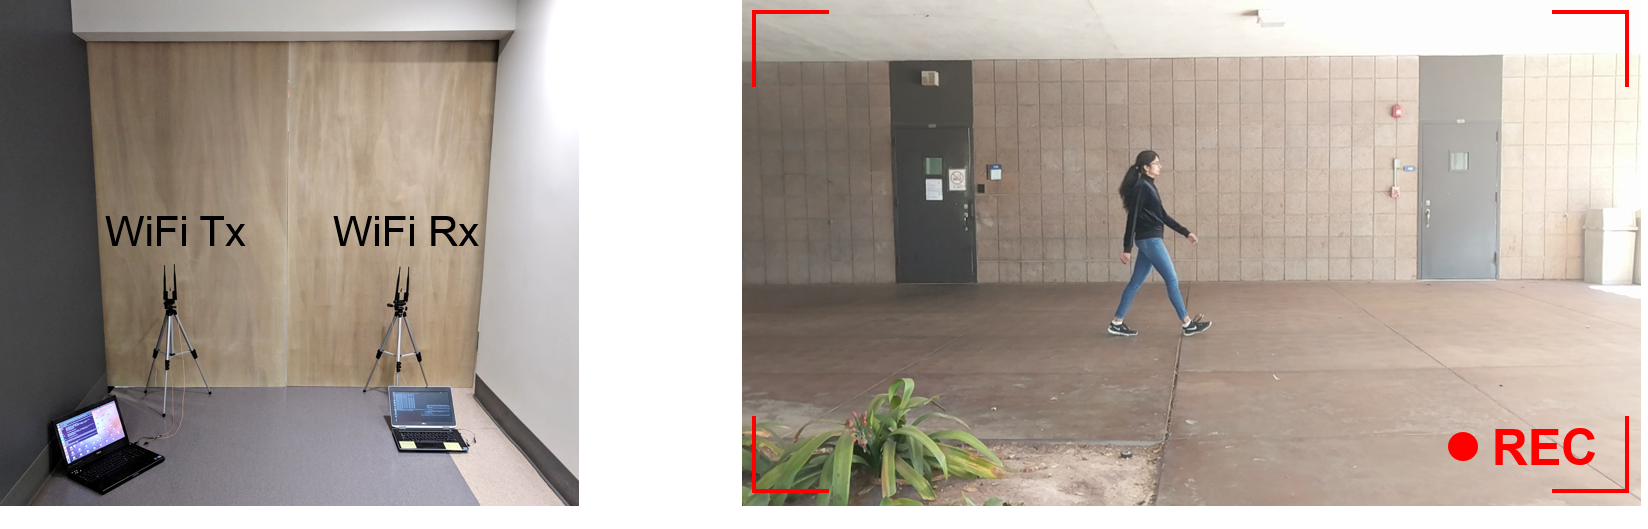 Your Video Can ID You Through Walls with Help of Wi-Fi